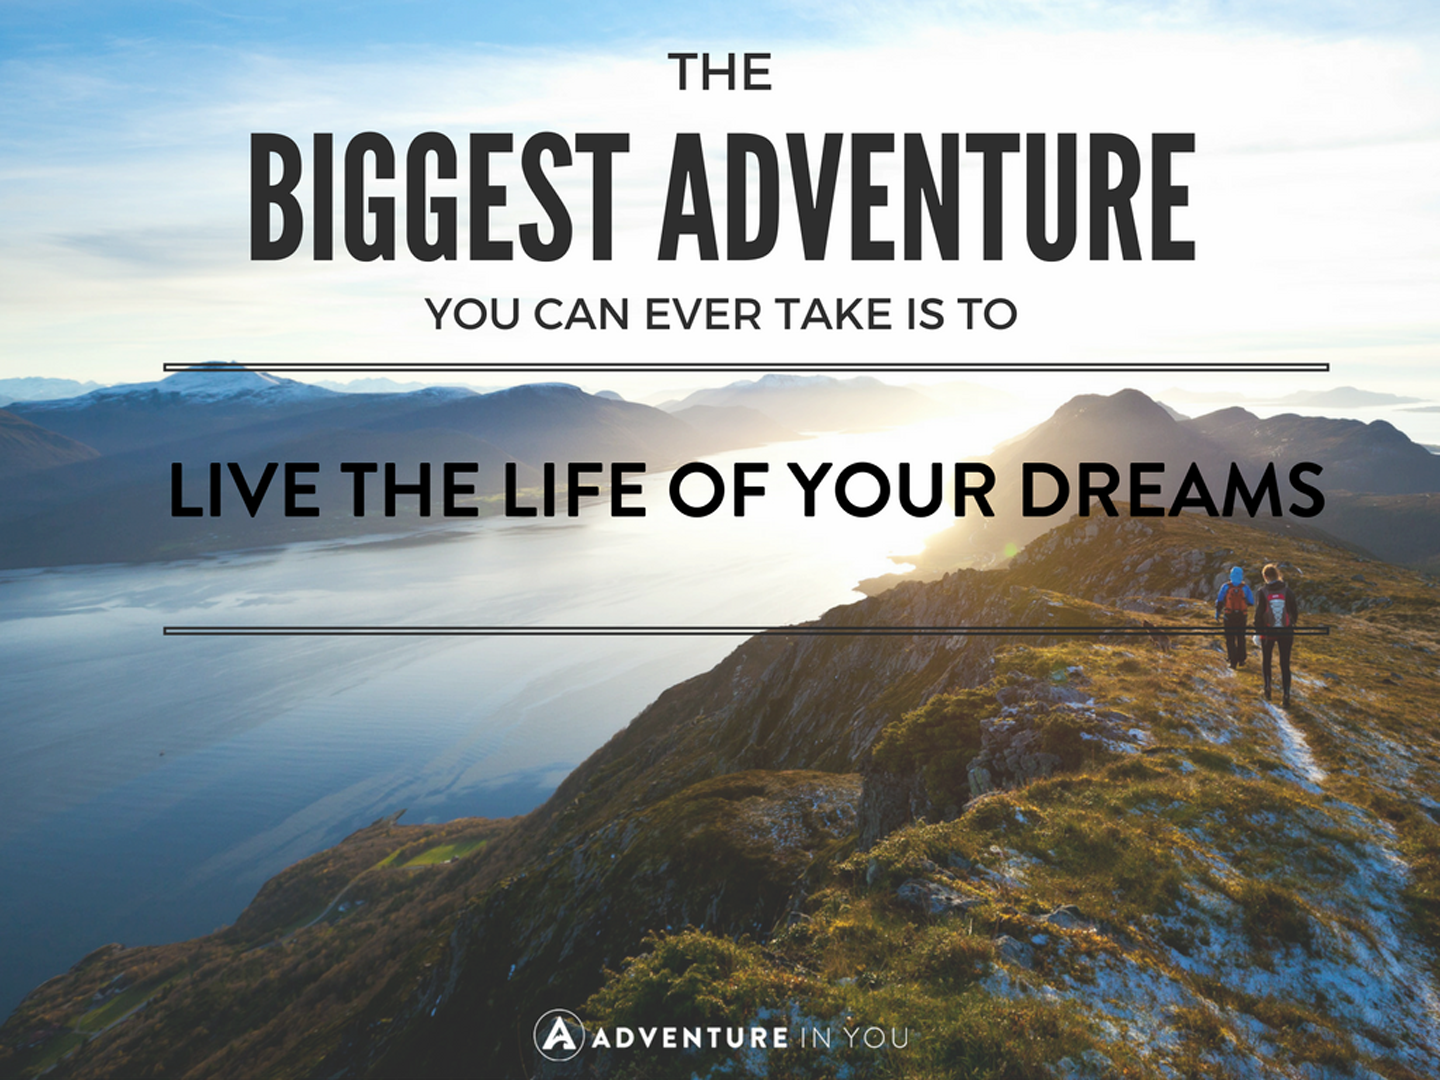 Travel quotes - the biggest adventure you can ever take is to live the life of your dreams